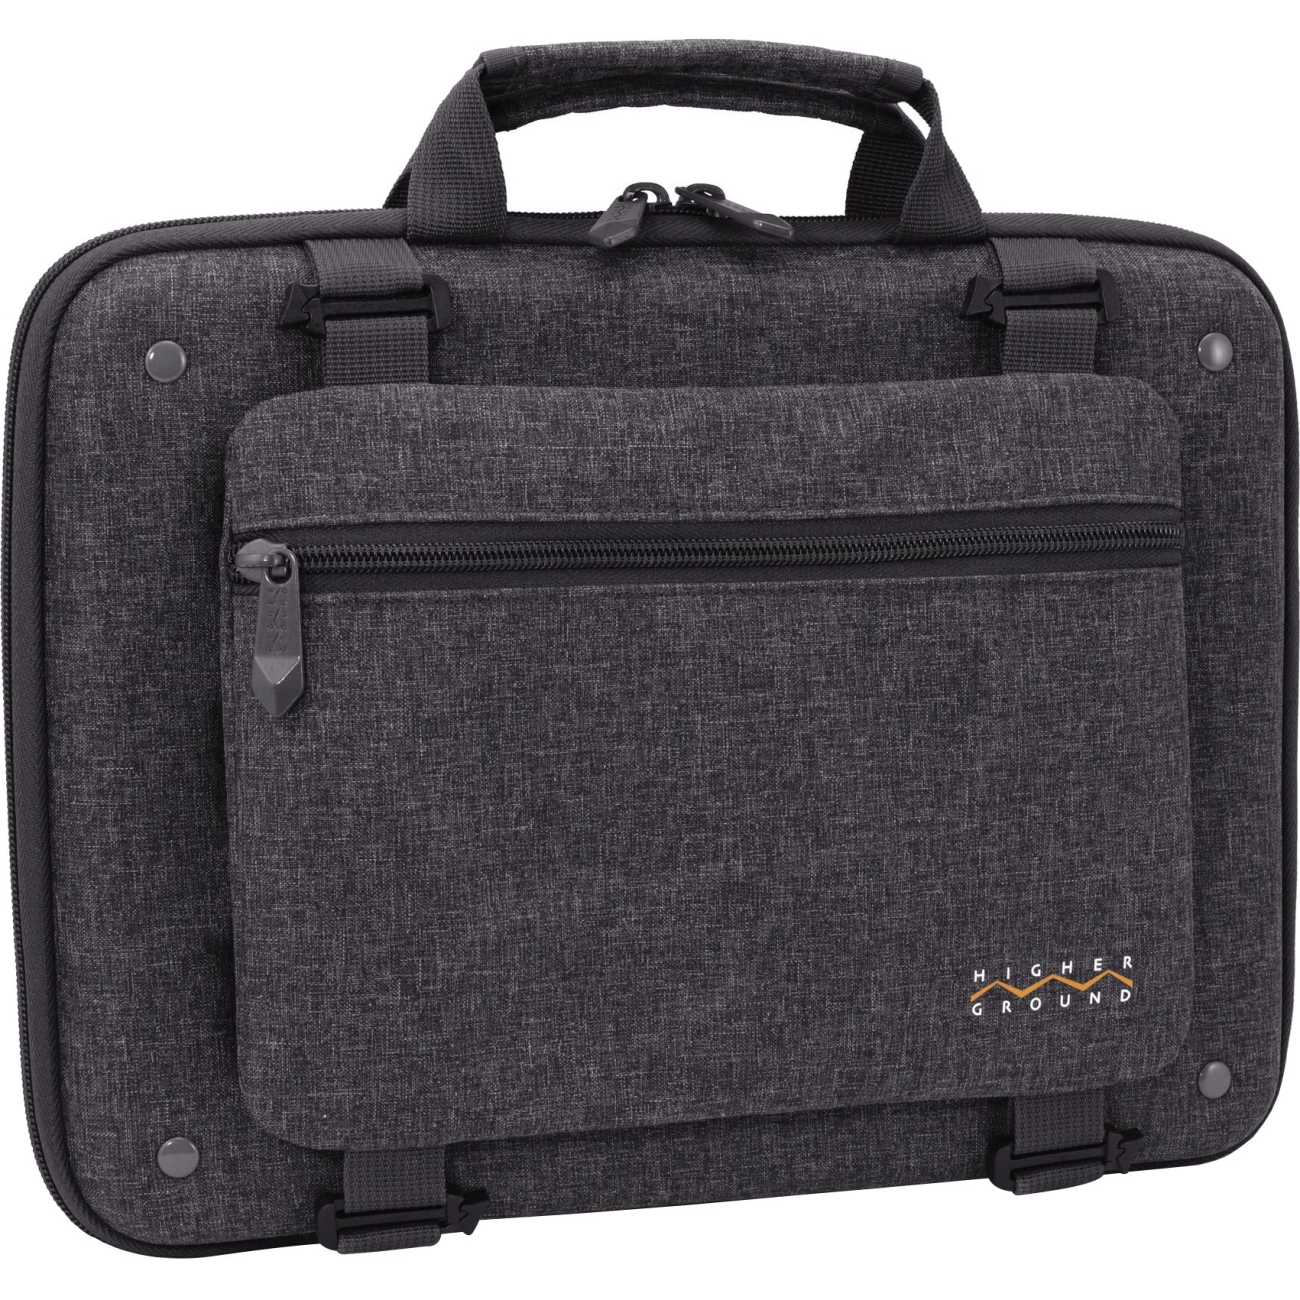 "Higher Ground Shuttle 3.0 Carrying Case for 14"" Notebook - Gray (stl3-0-14gry)"